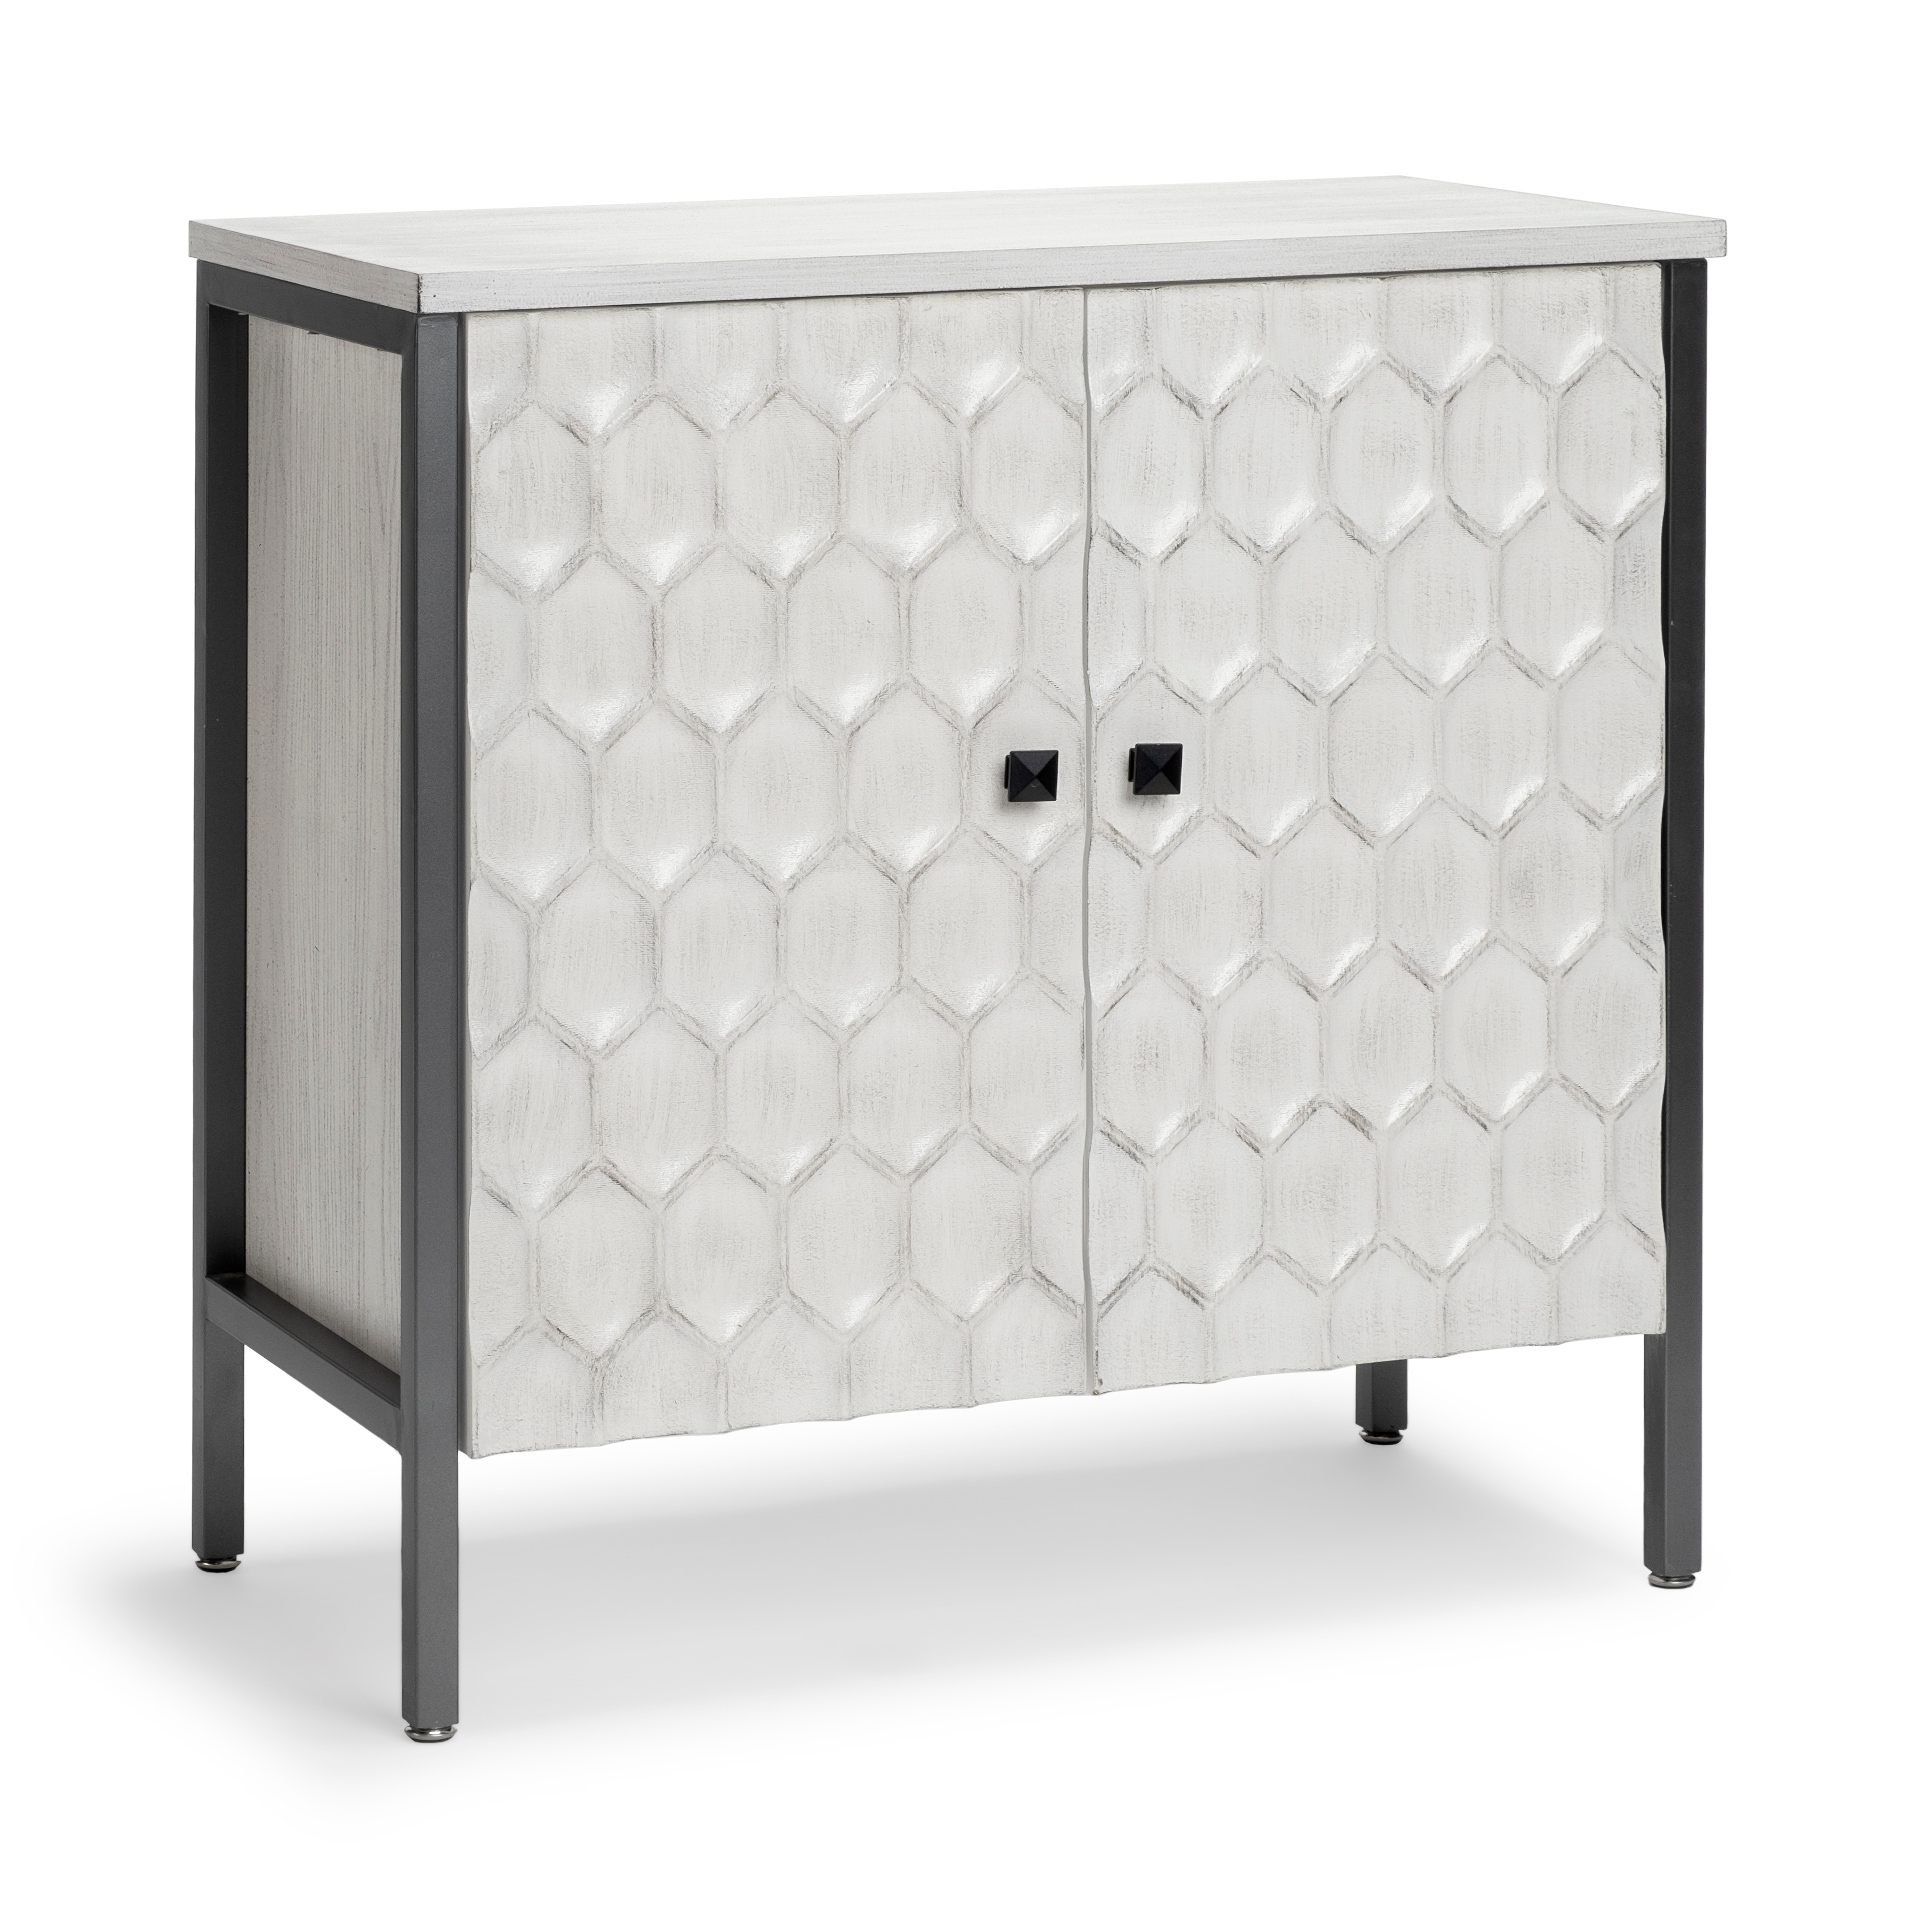 Mercana Savannah I Cabinet, Black | Products In 2019 | Home In Madison Park Mirai White Buffets (View 12 of 20)